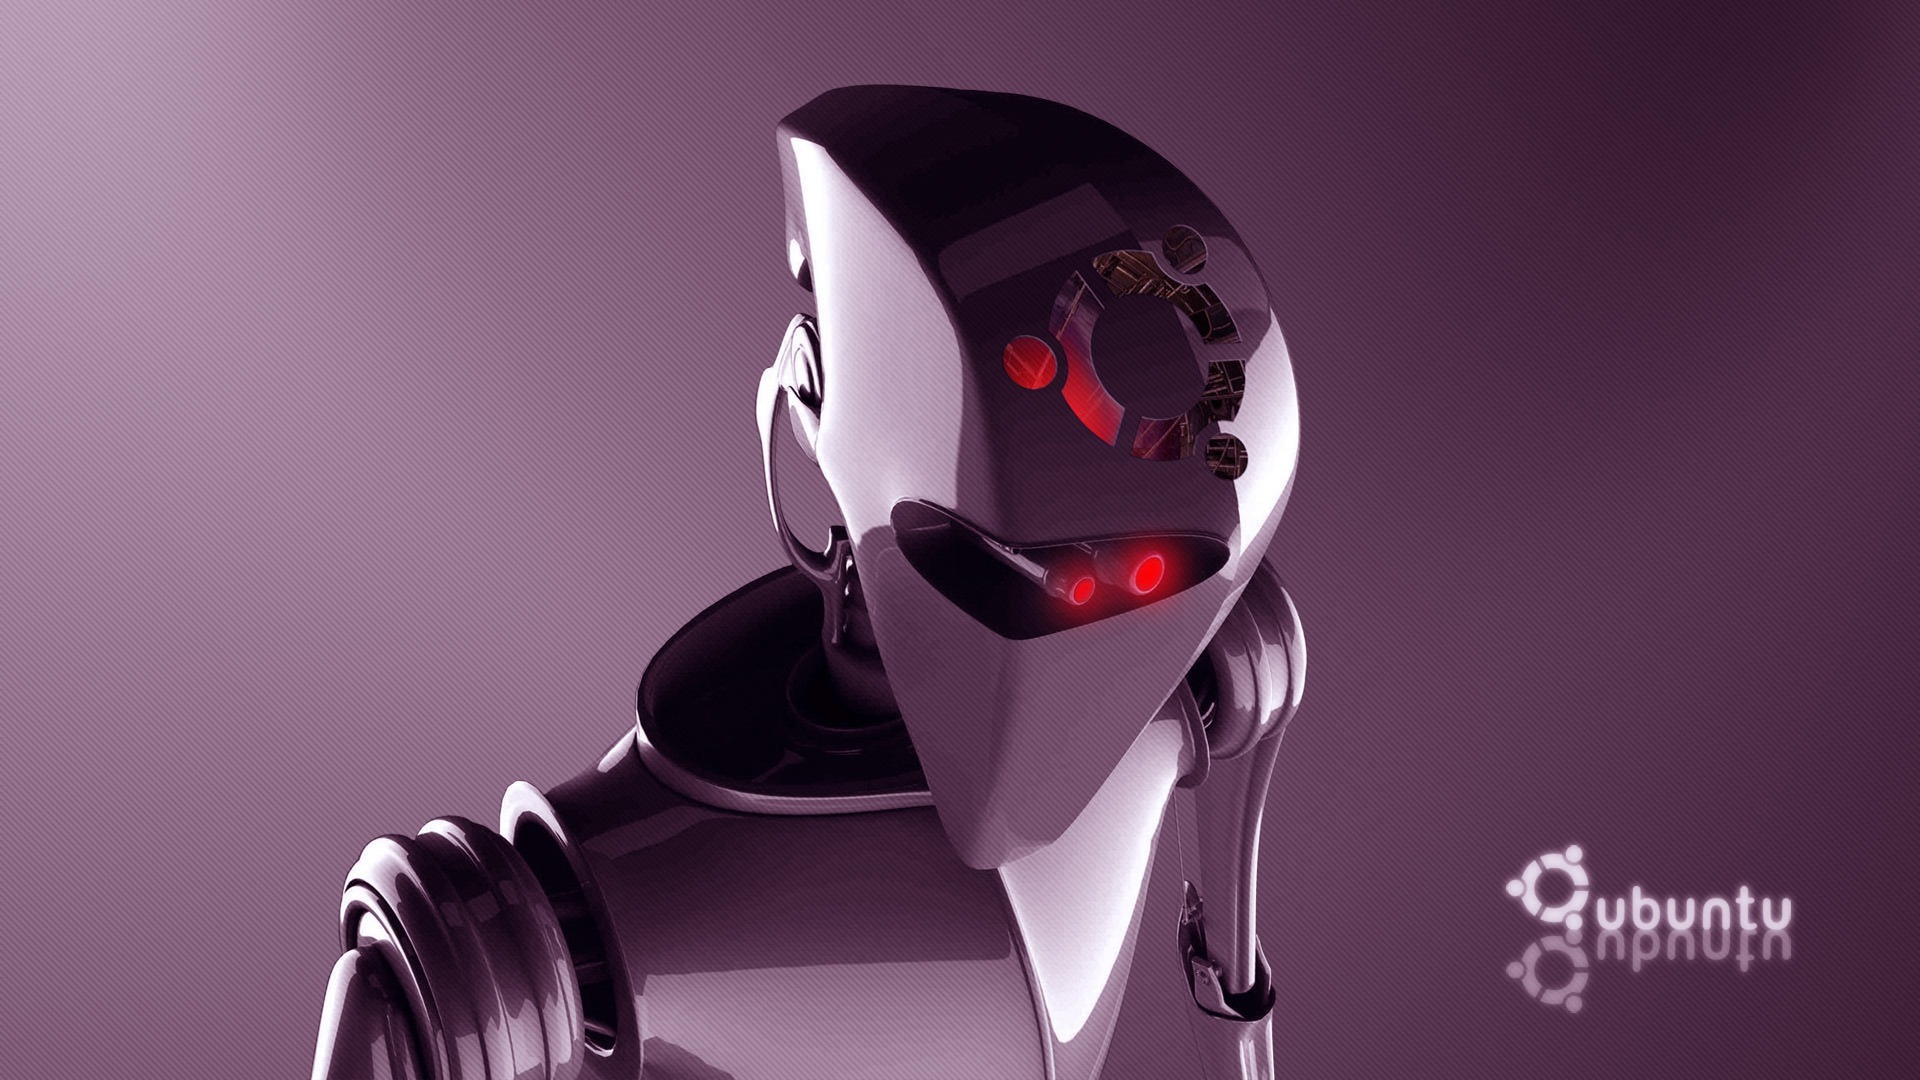 robot ubuntu window Technology HD Wallpaper